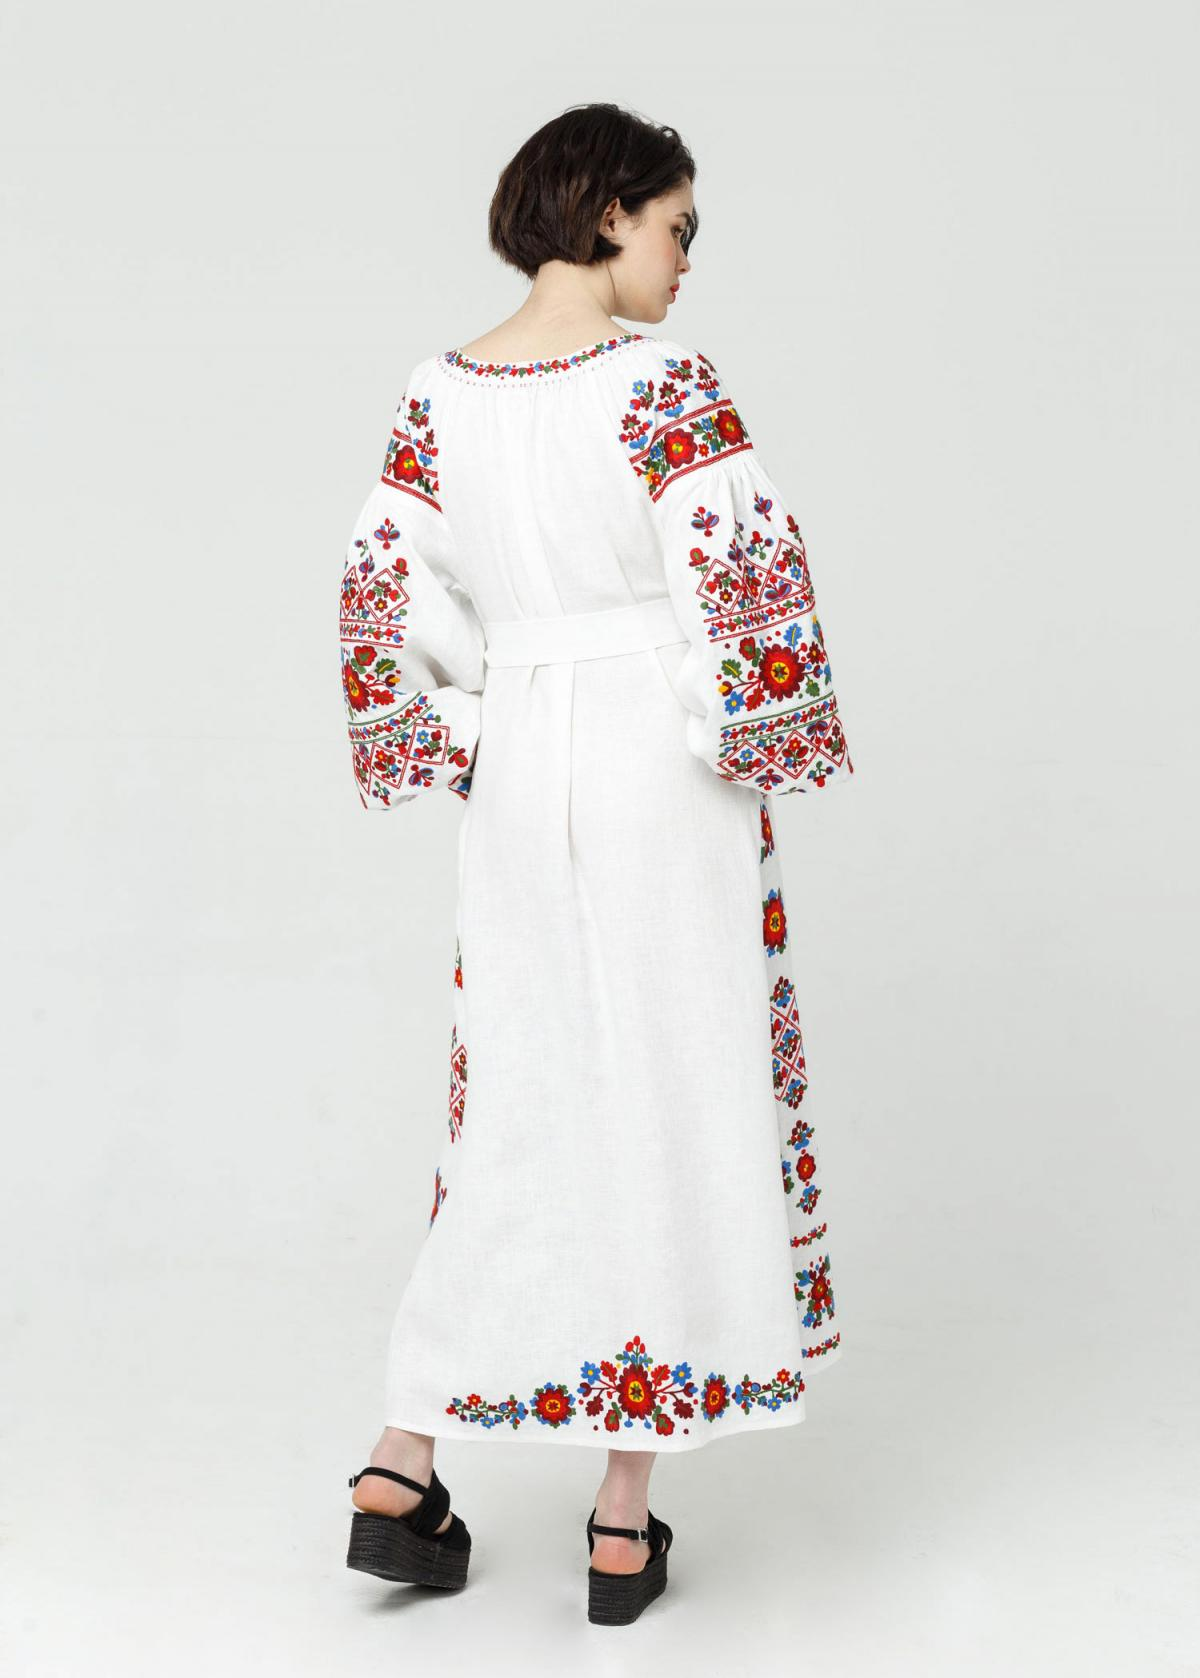 Long white embroidered dress with embroidery flowers,  Limited Edition. Photo №6. | Narodnyi dim Ukraine